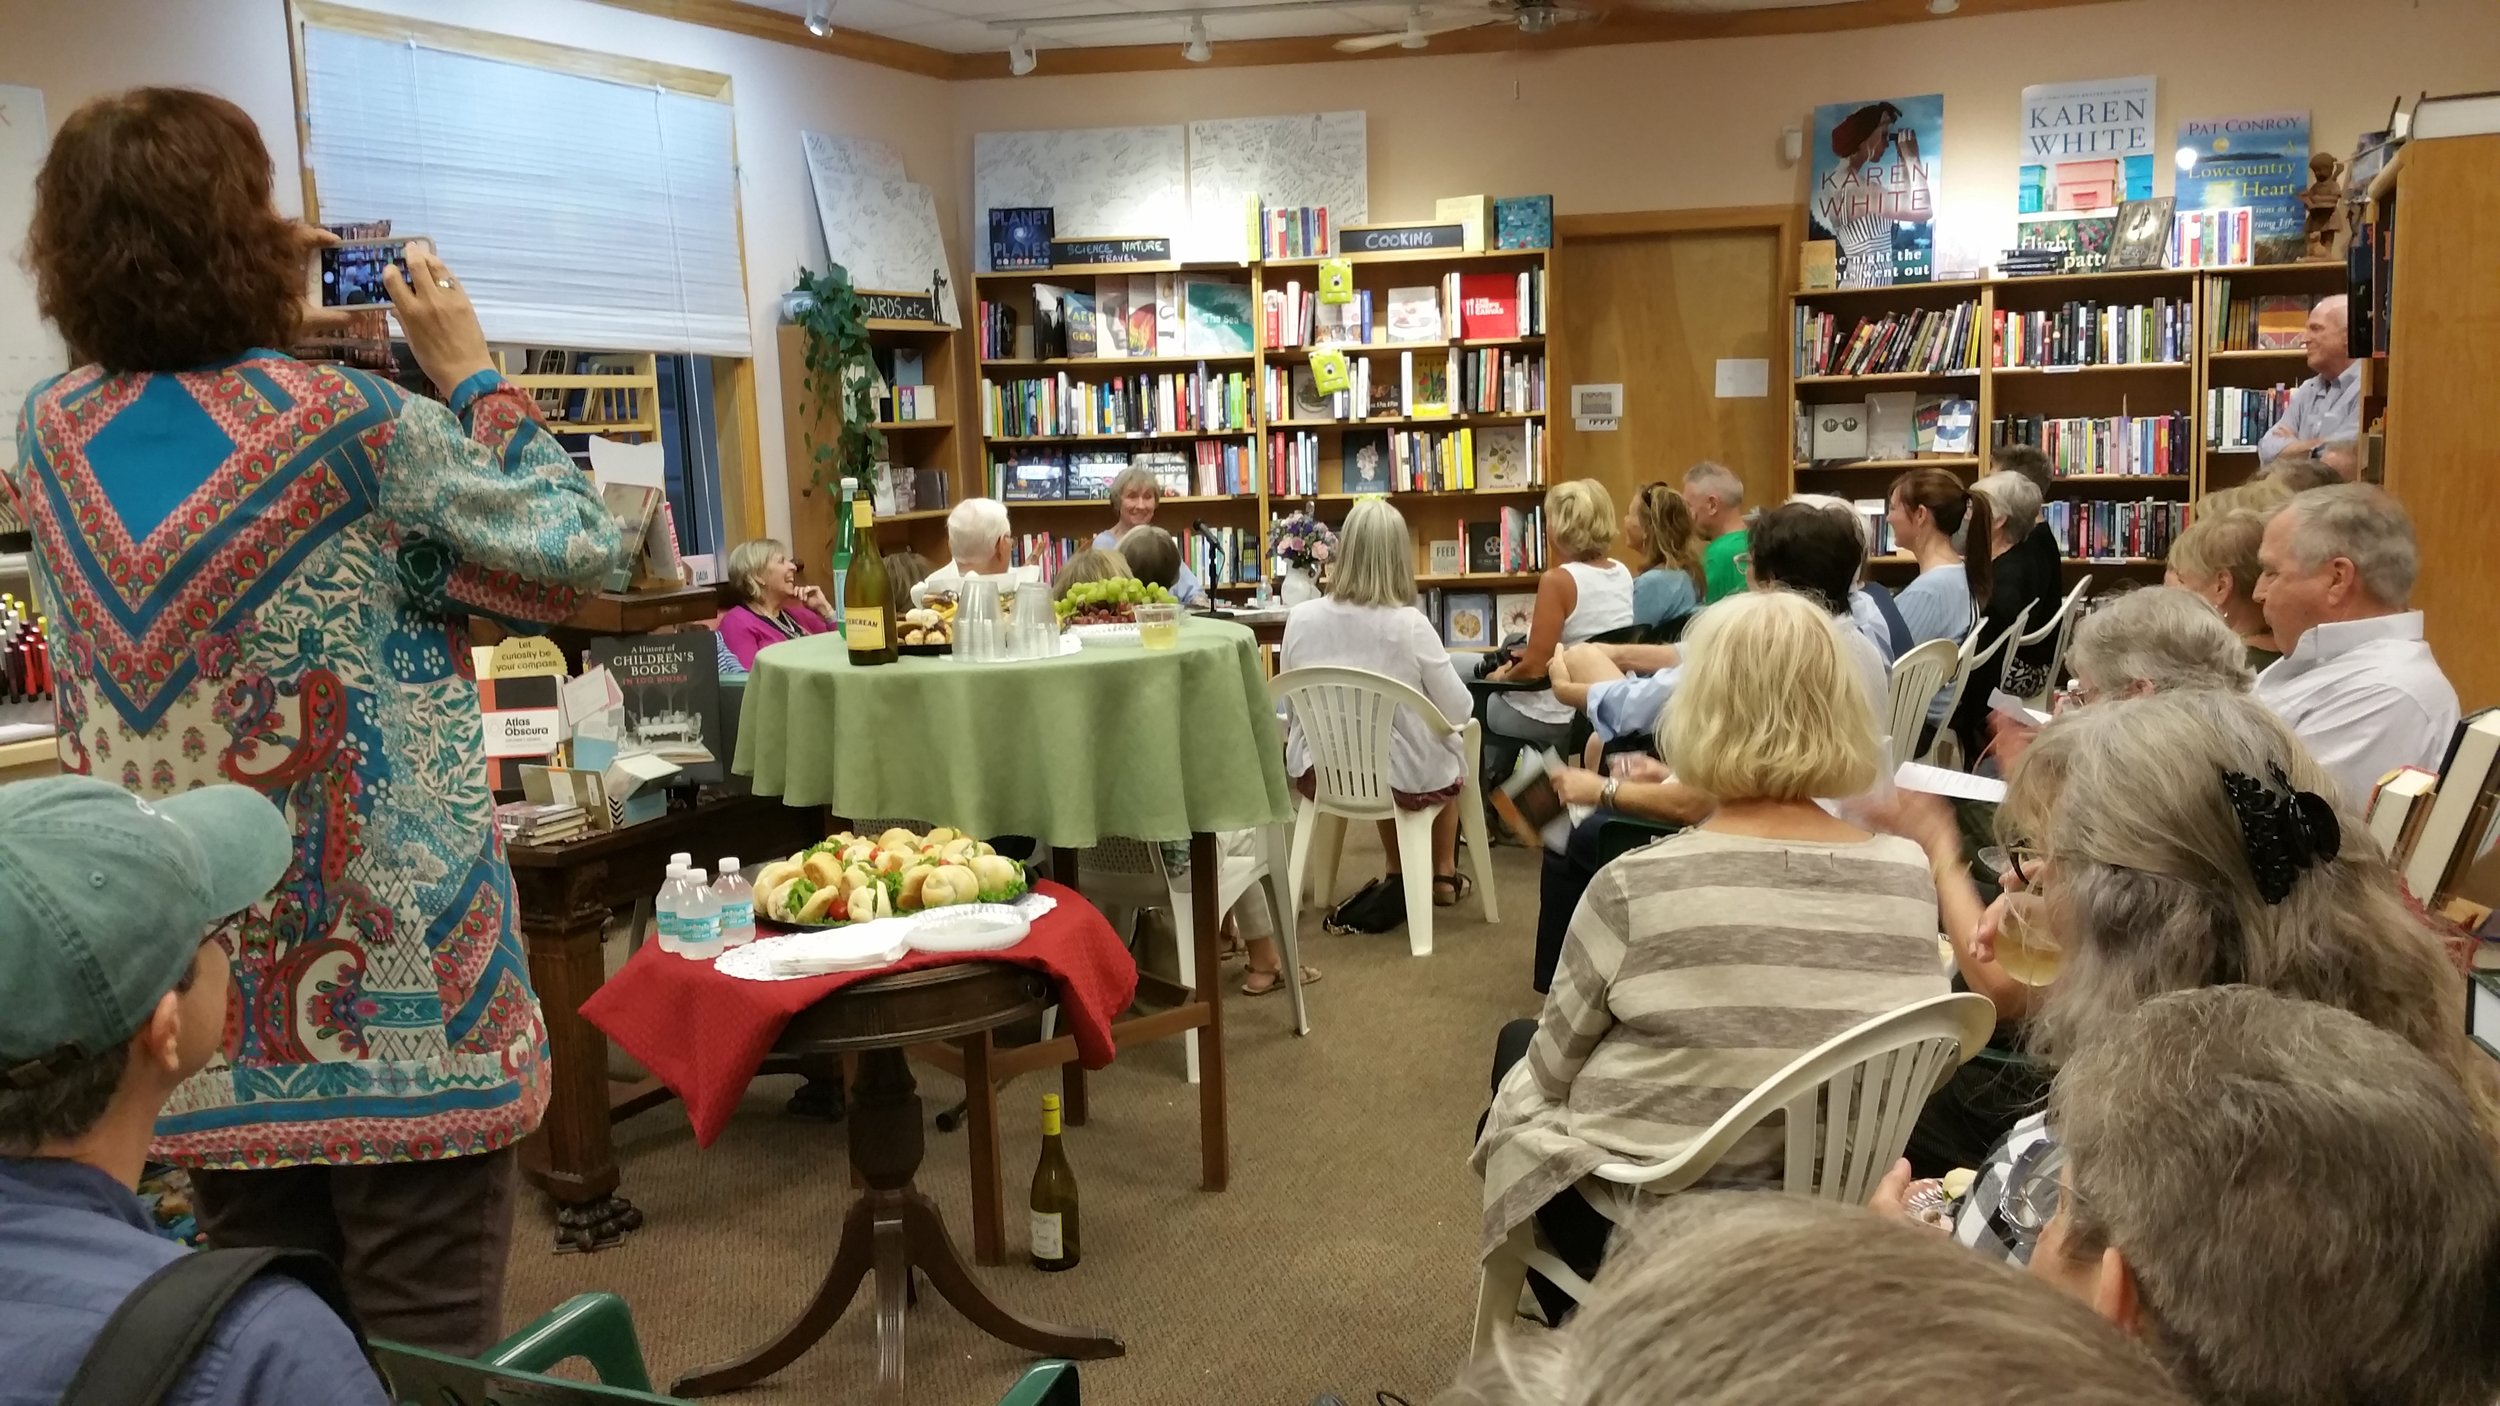 The crowd at The BookMark.